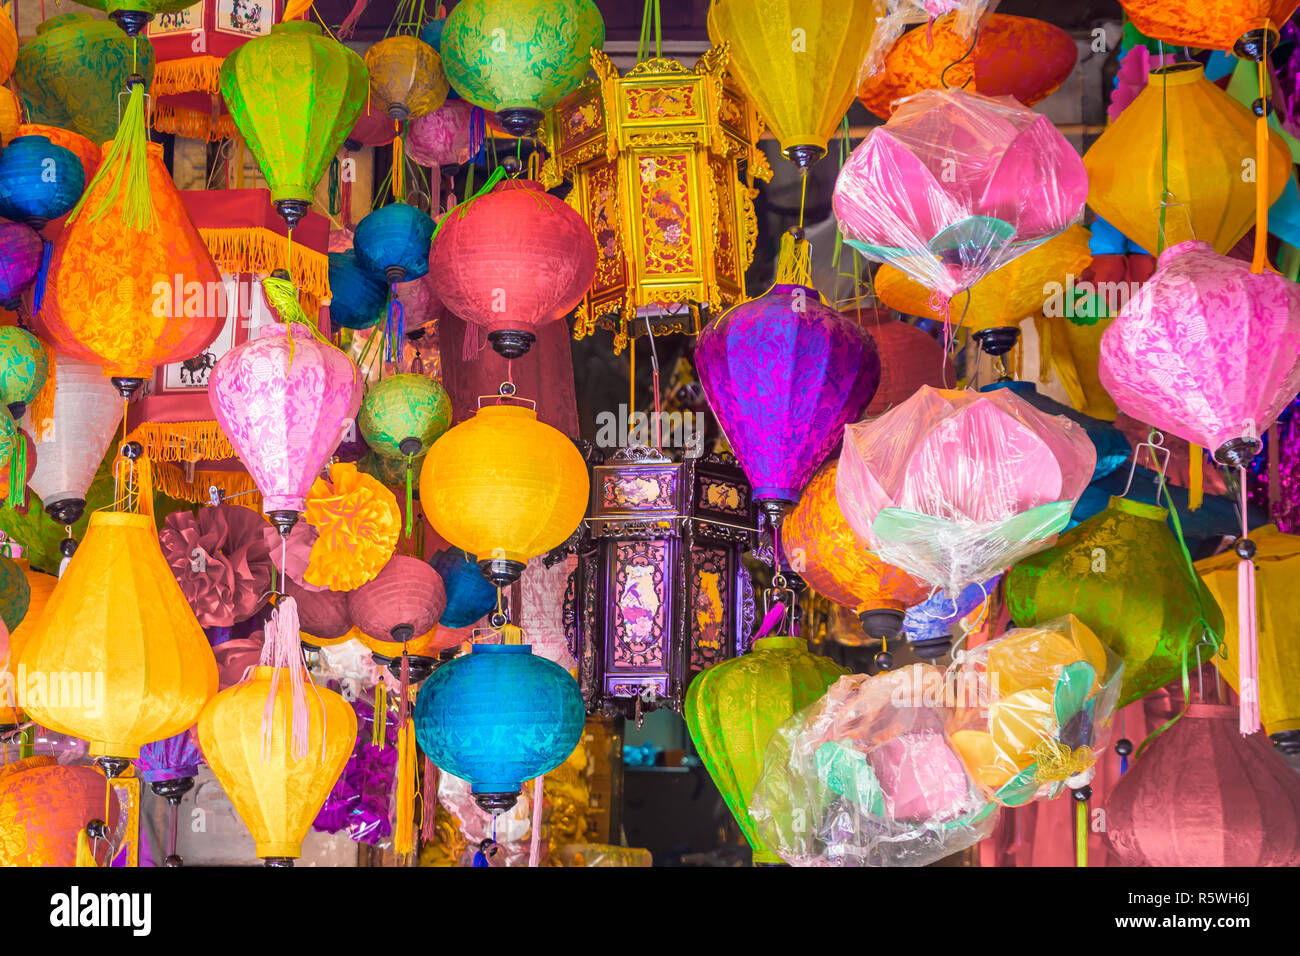 many traditional, colorful lamps hanging in the street shop in Hanoi, Vietnam - Stock Image